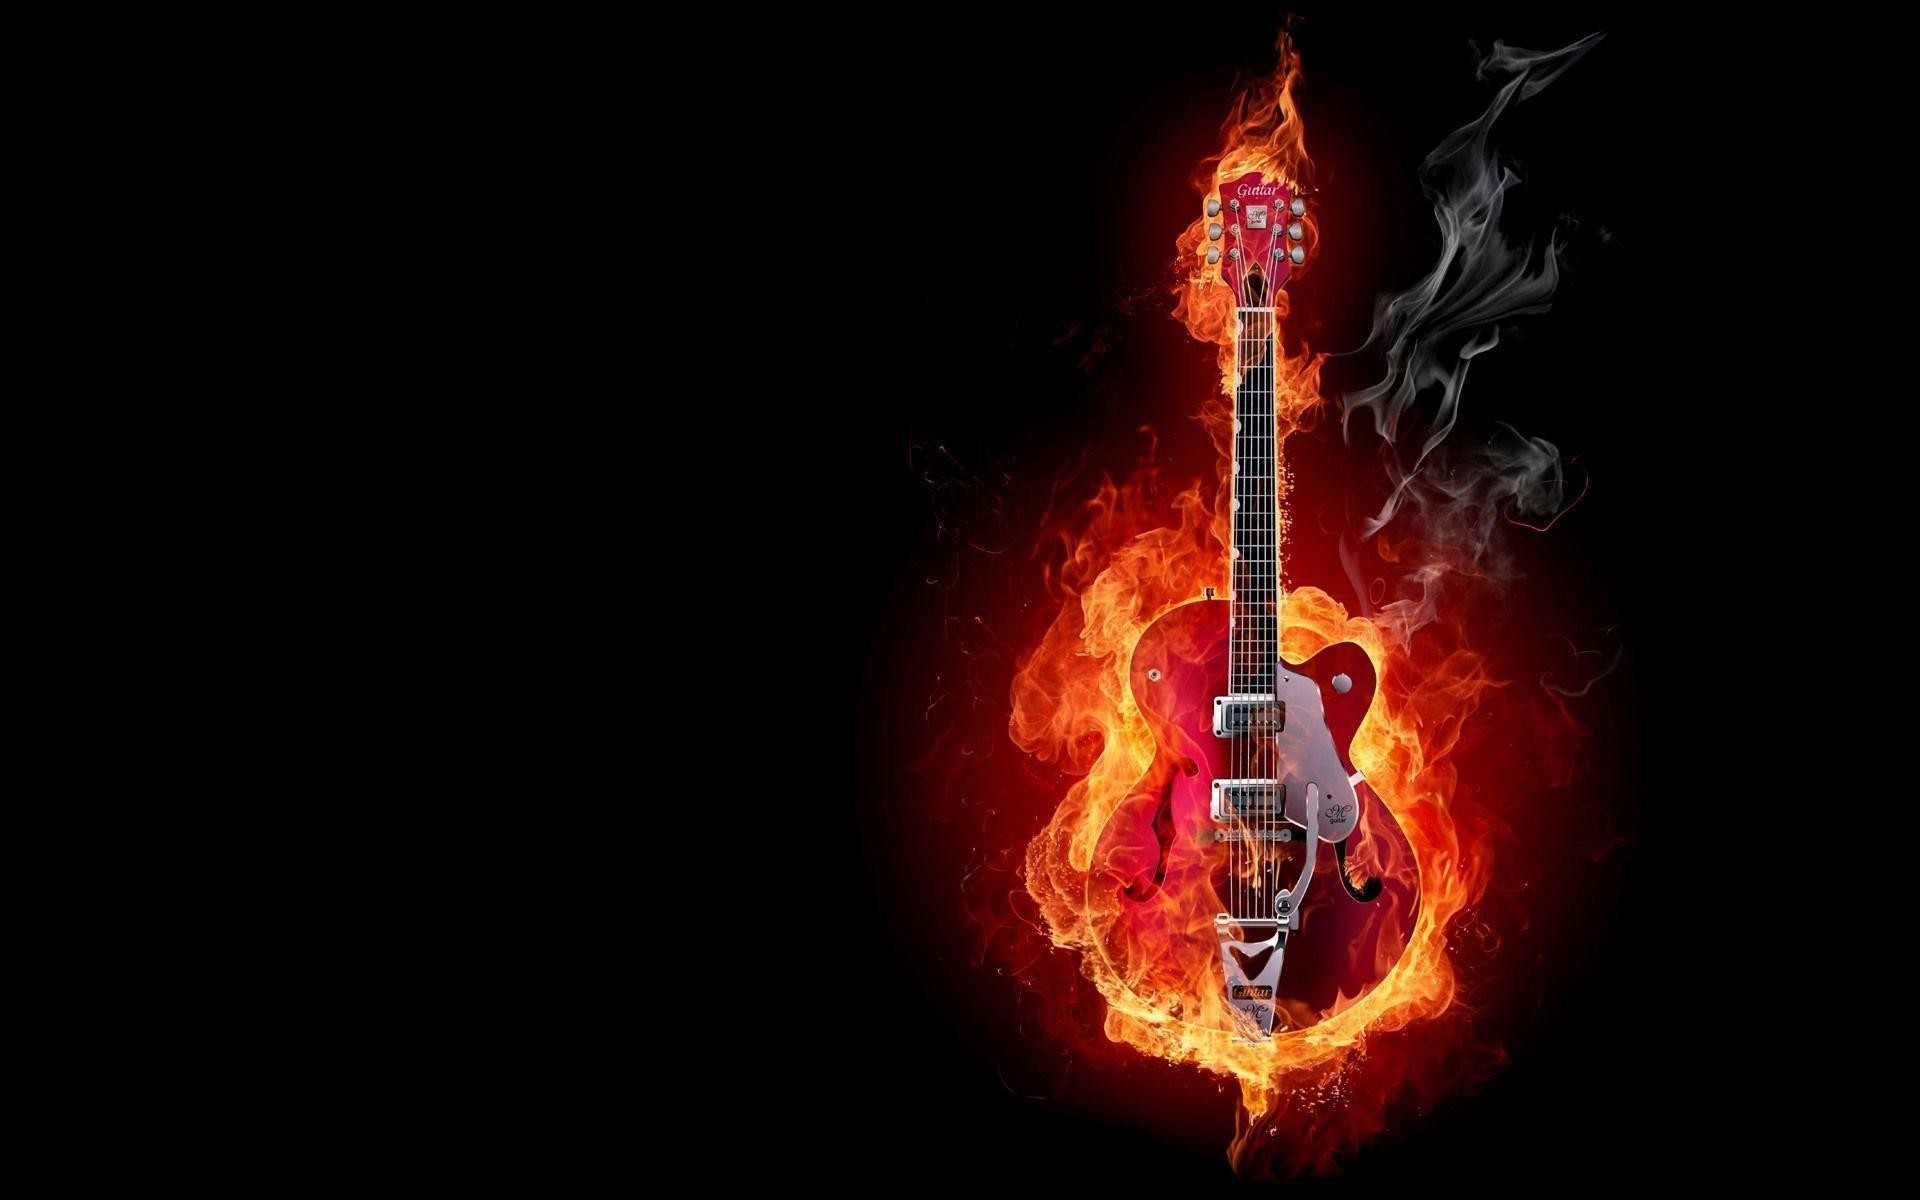 1920x1200 Awesome Guitar Backgrounds